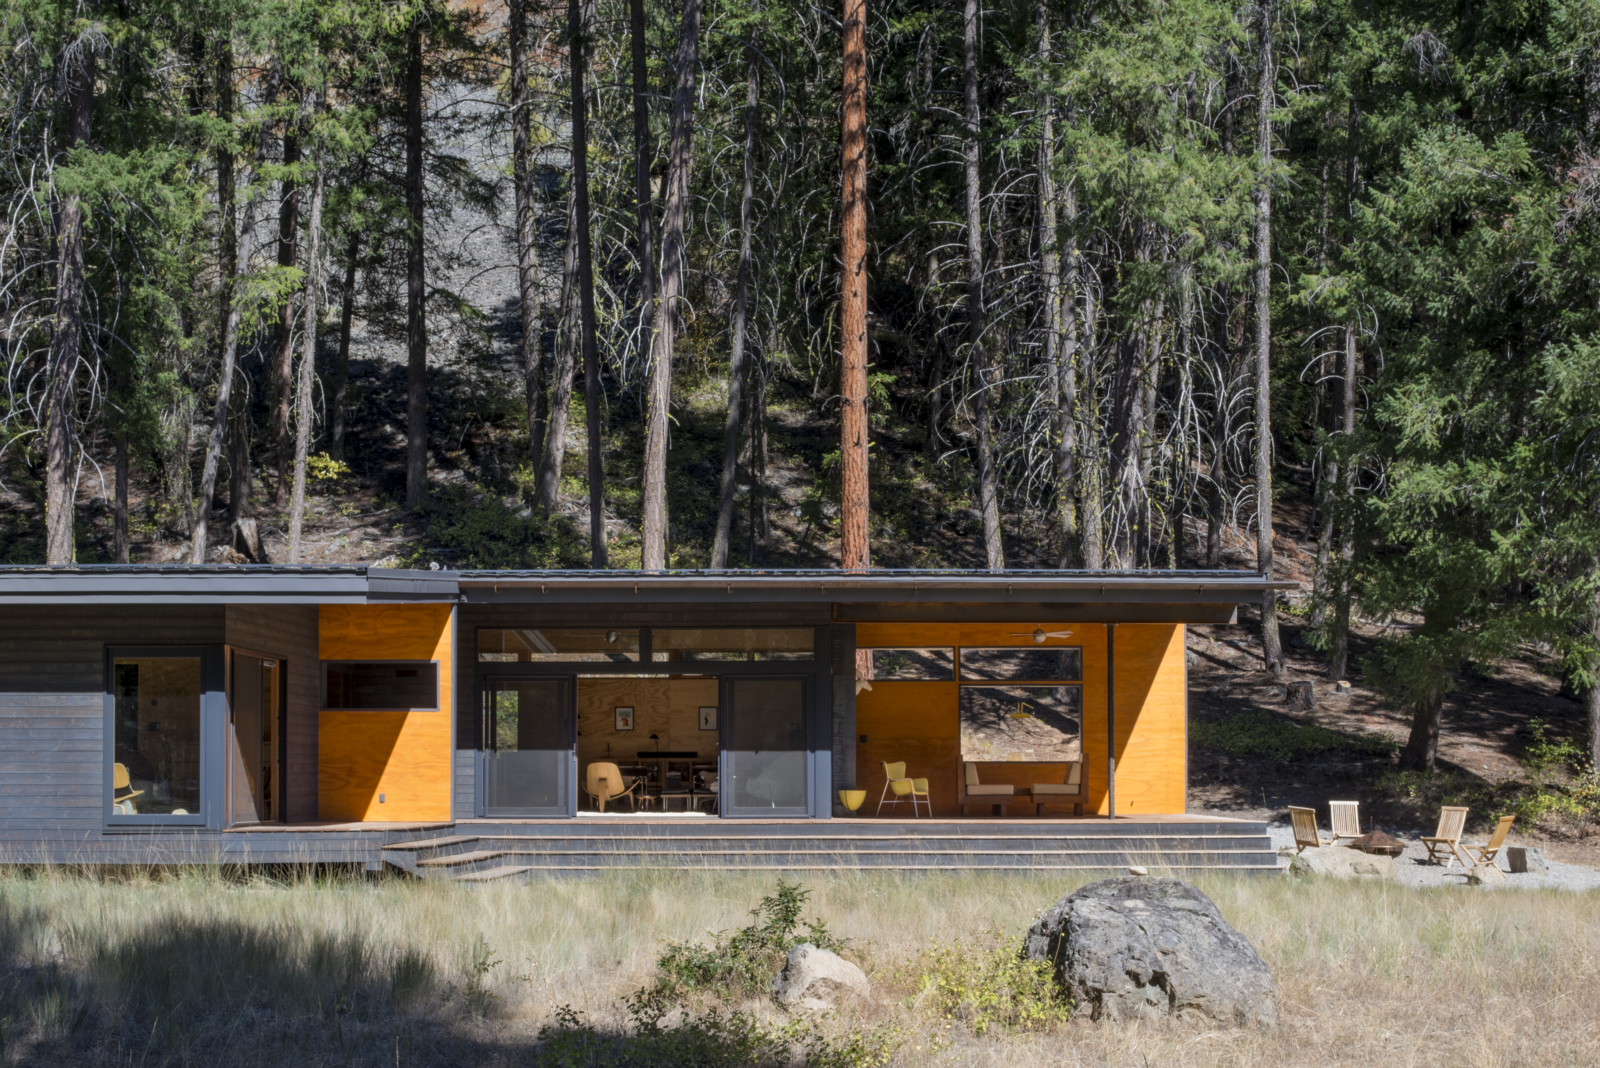 Photo 3 of 10 in A Lean Cabin in Washington Dismantles the Indoor/Outdoor Divide